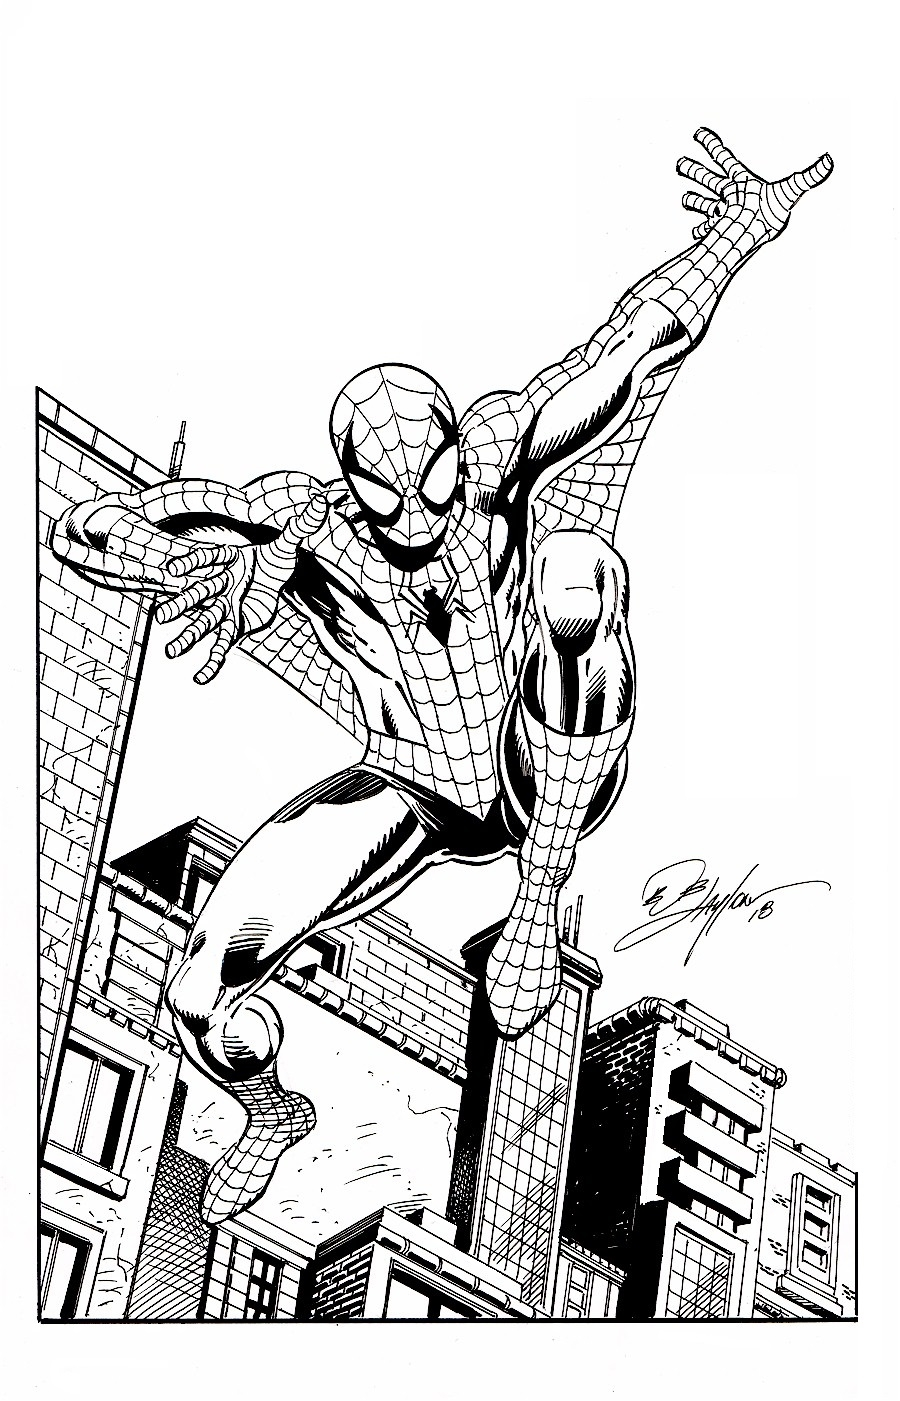 Amazing spider man 11 x 17 drawing comic art